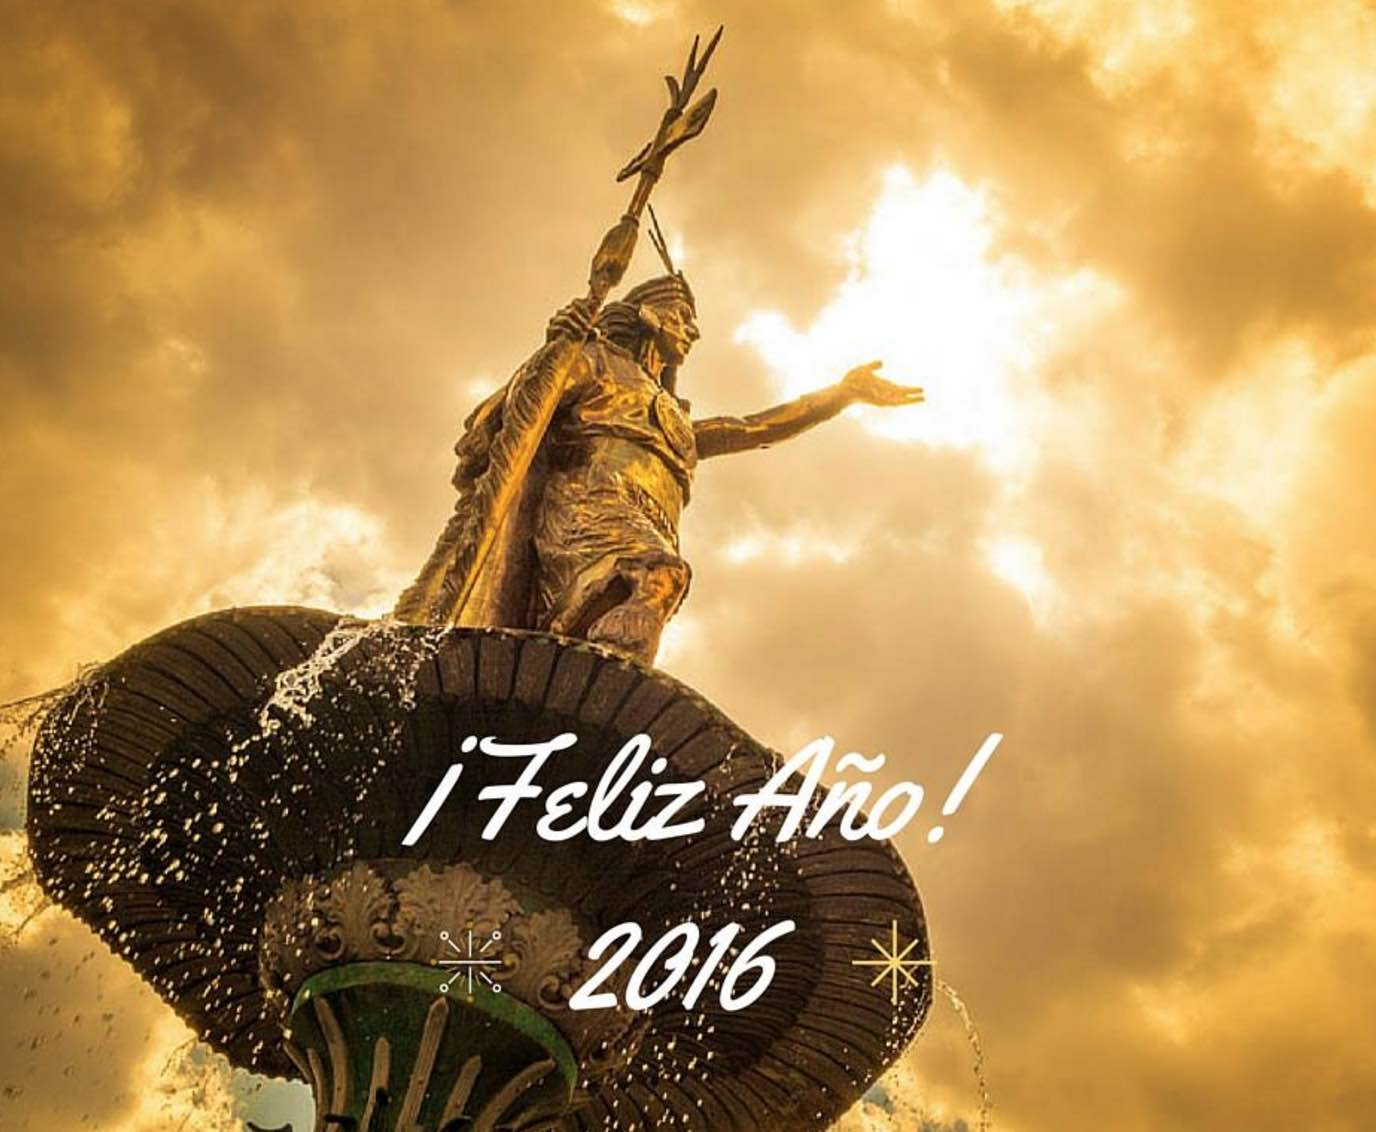 Happy New Years from the Inca and from Us (Walter Coraza Morveli)